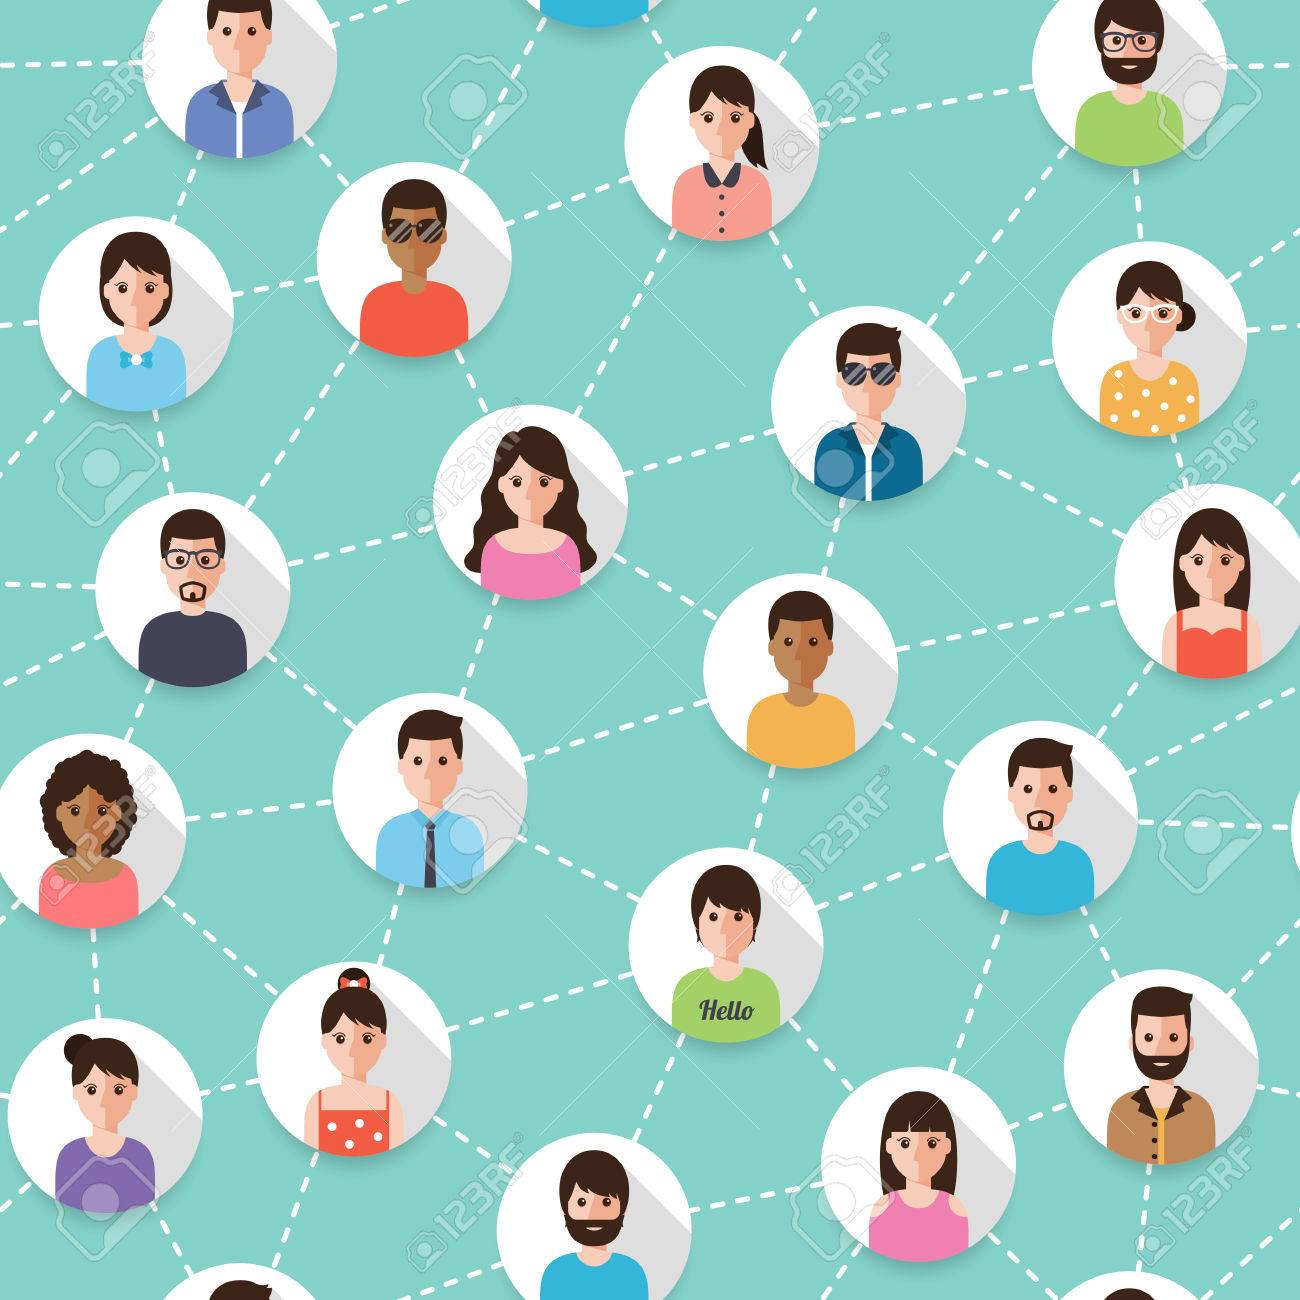 Connected people and social network seamless pattern. Flat design people characters. - 61380107